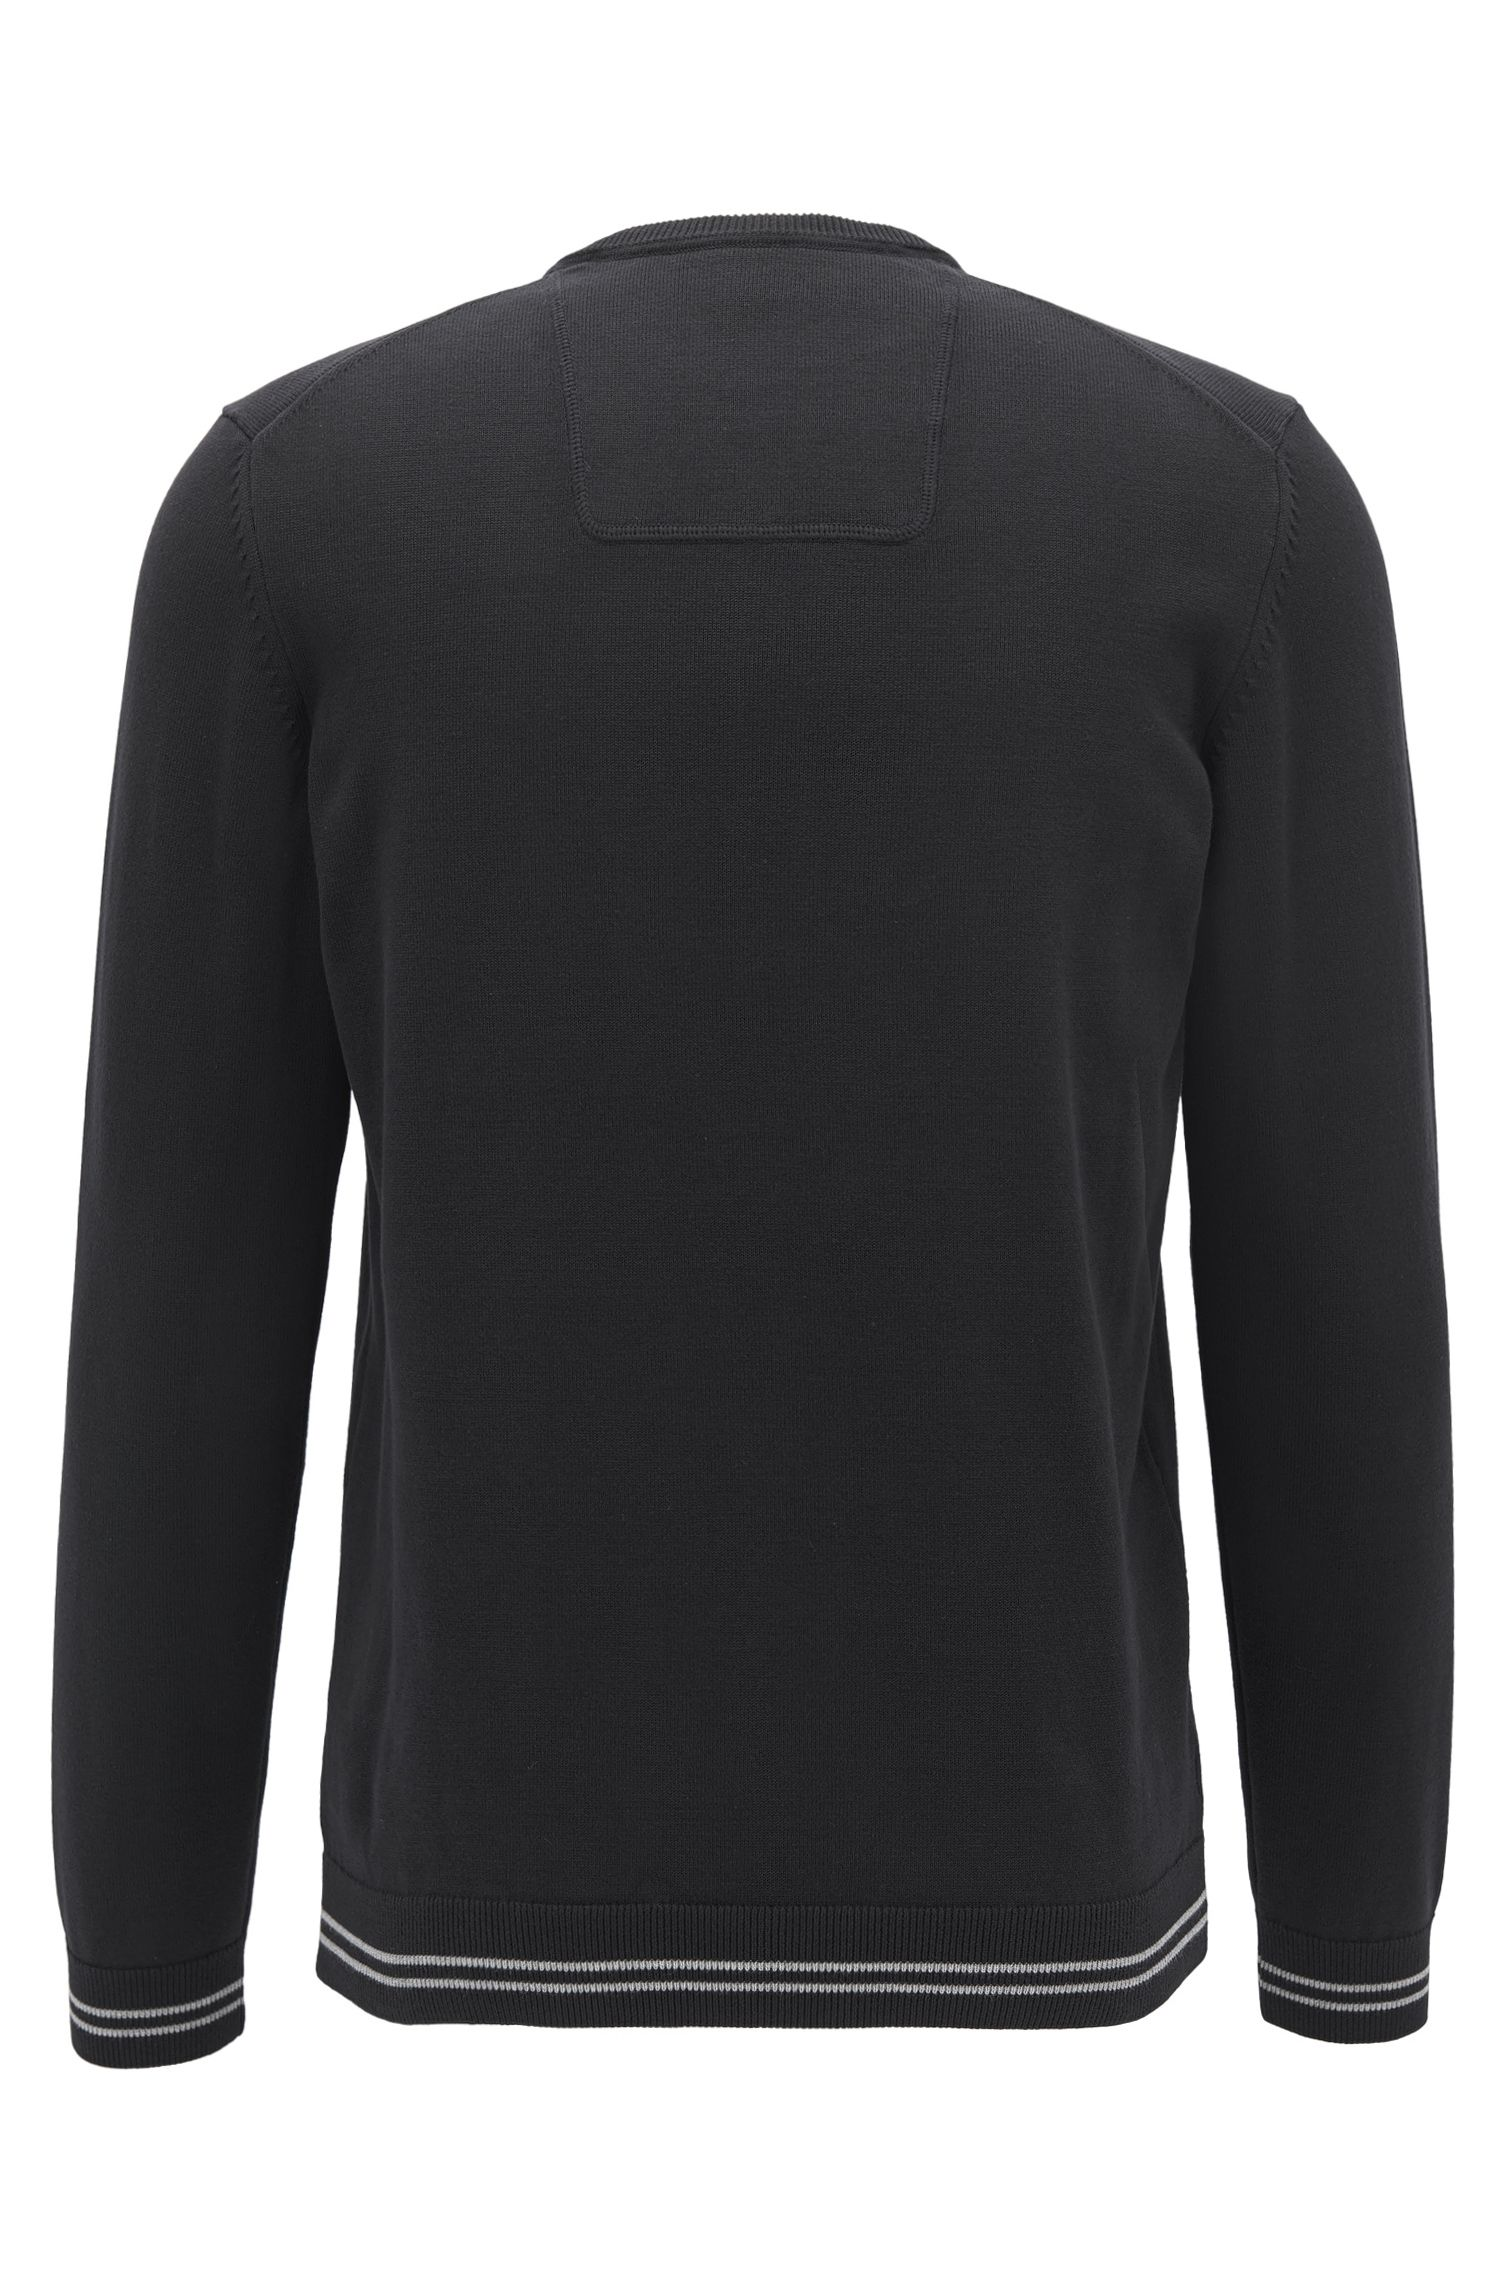 Tipped Stretch Cotton Sweater | Rime S, Black